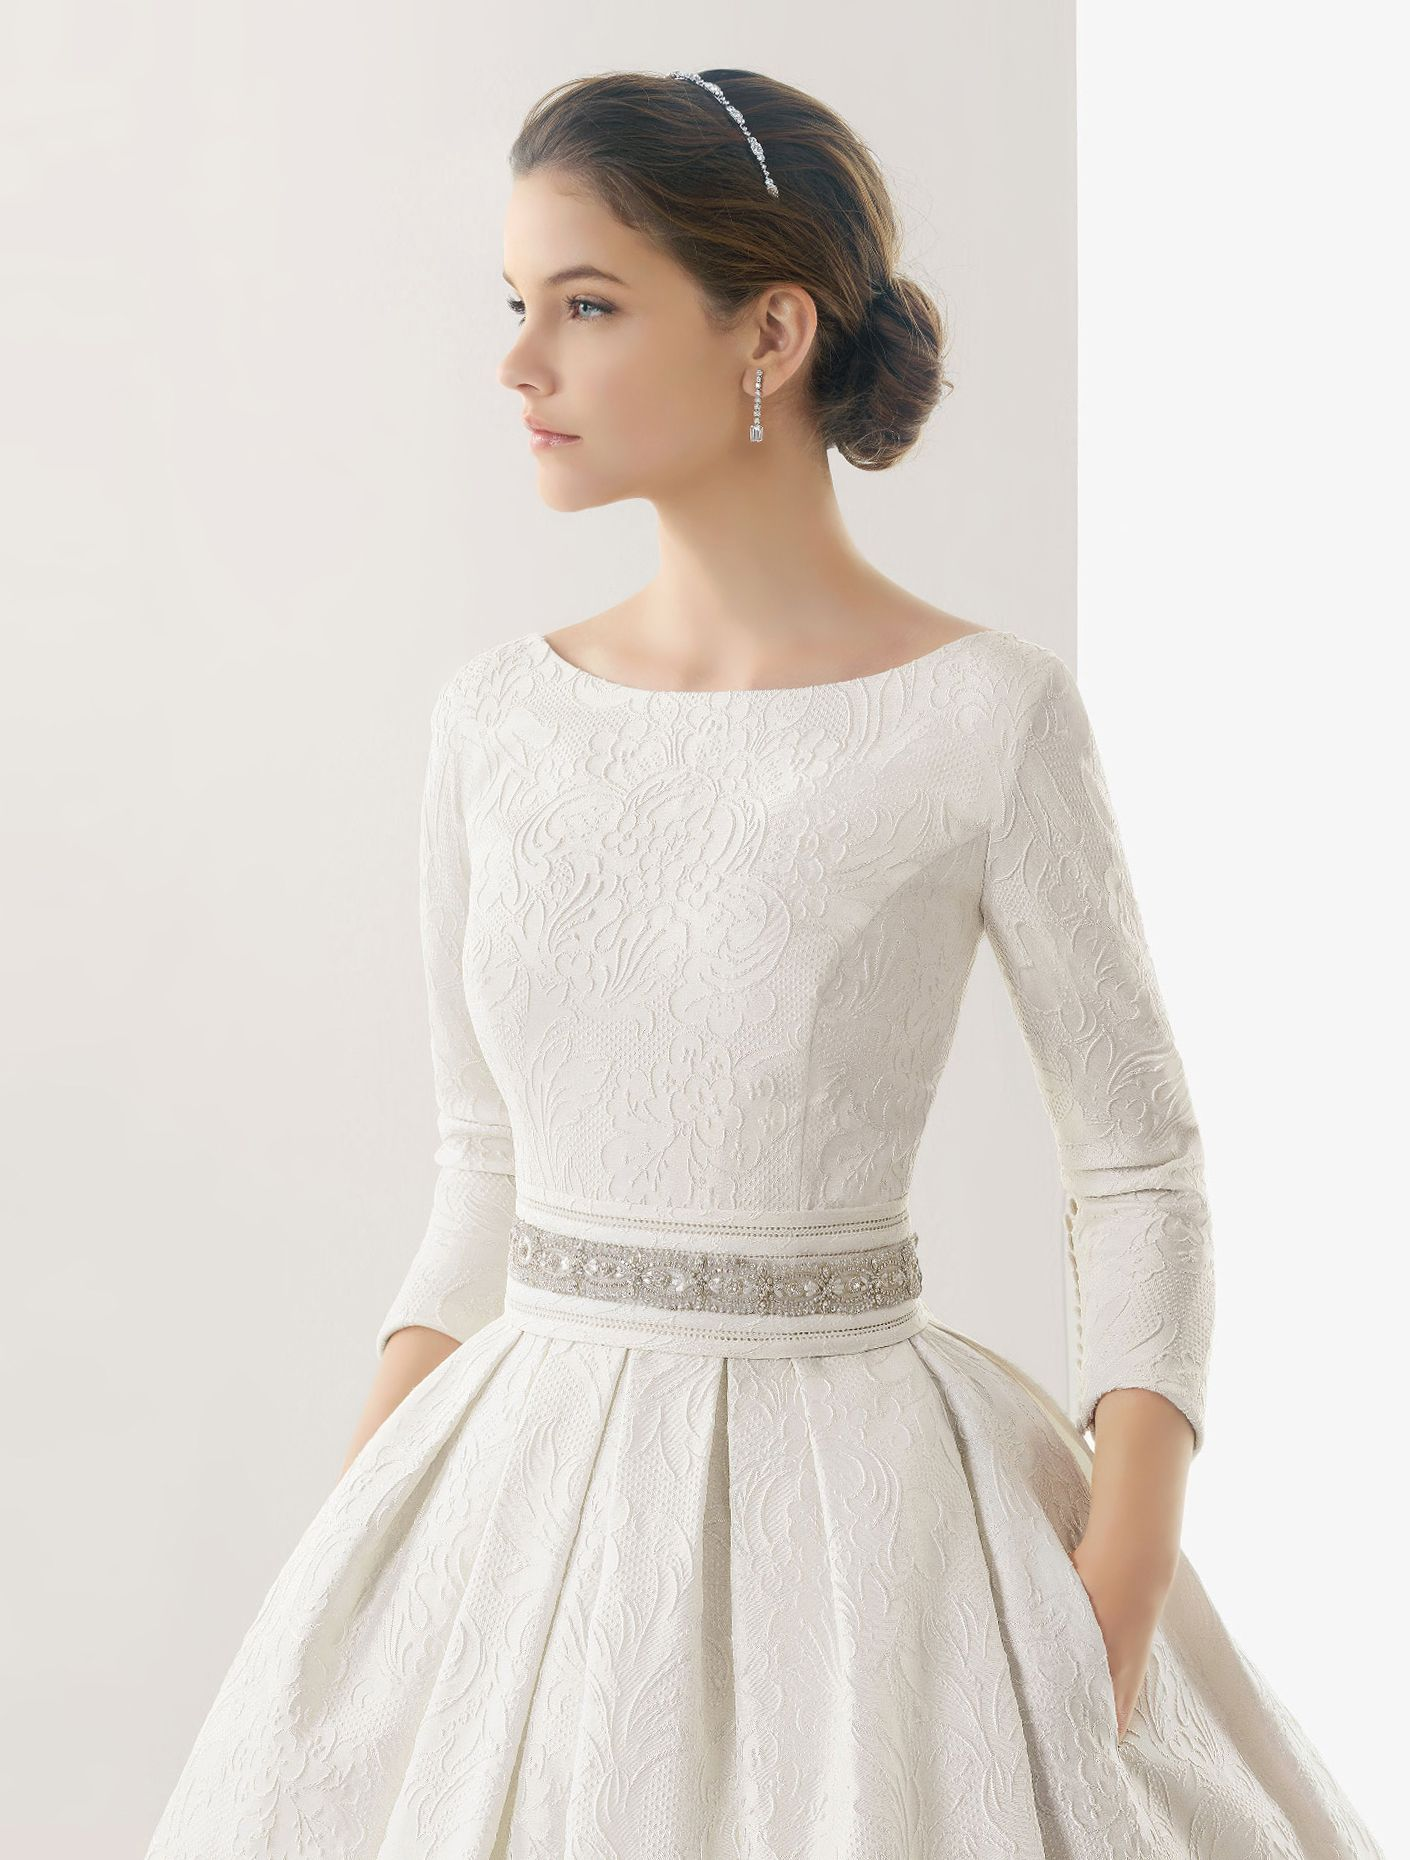 Wedding Dresses And Evening Gowns Wedding Dress Long Sleeve Court Train Wedding Dress Wedding Dress Necklines